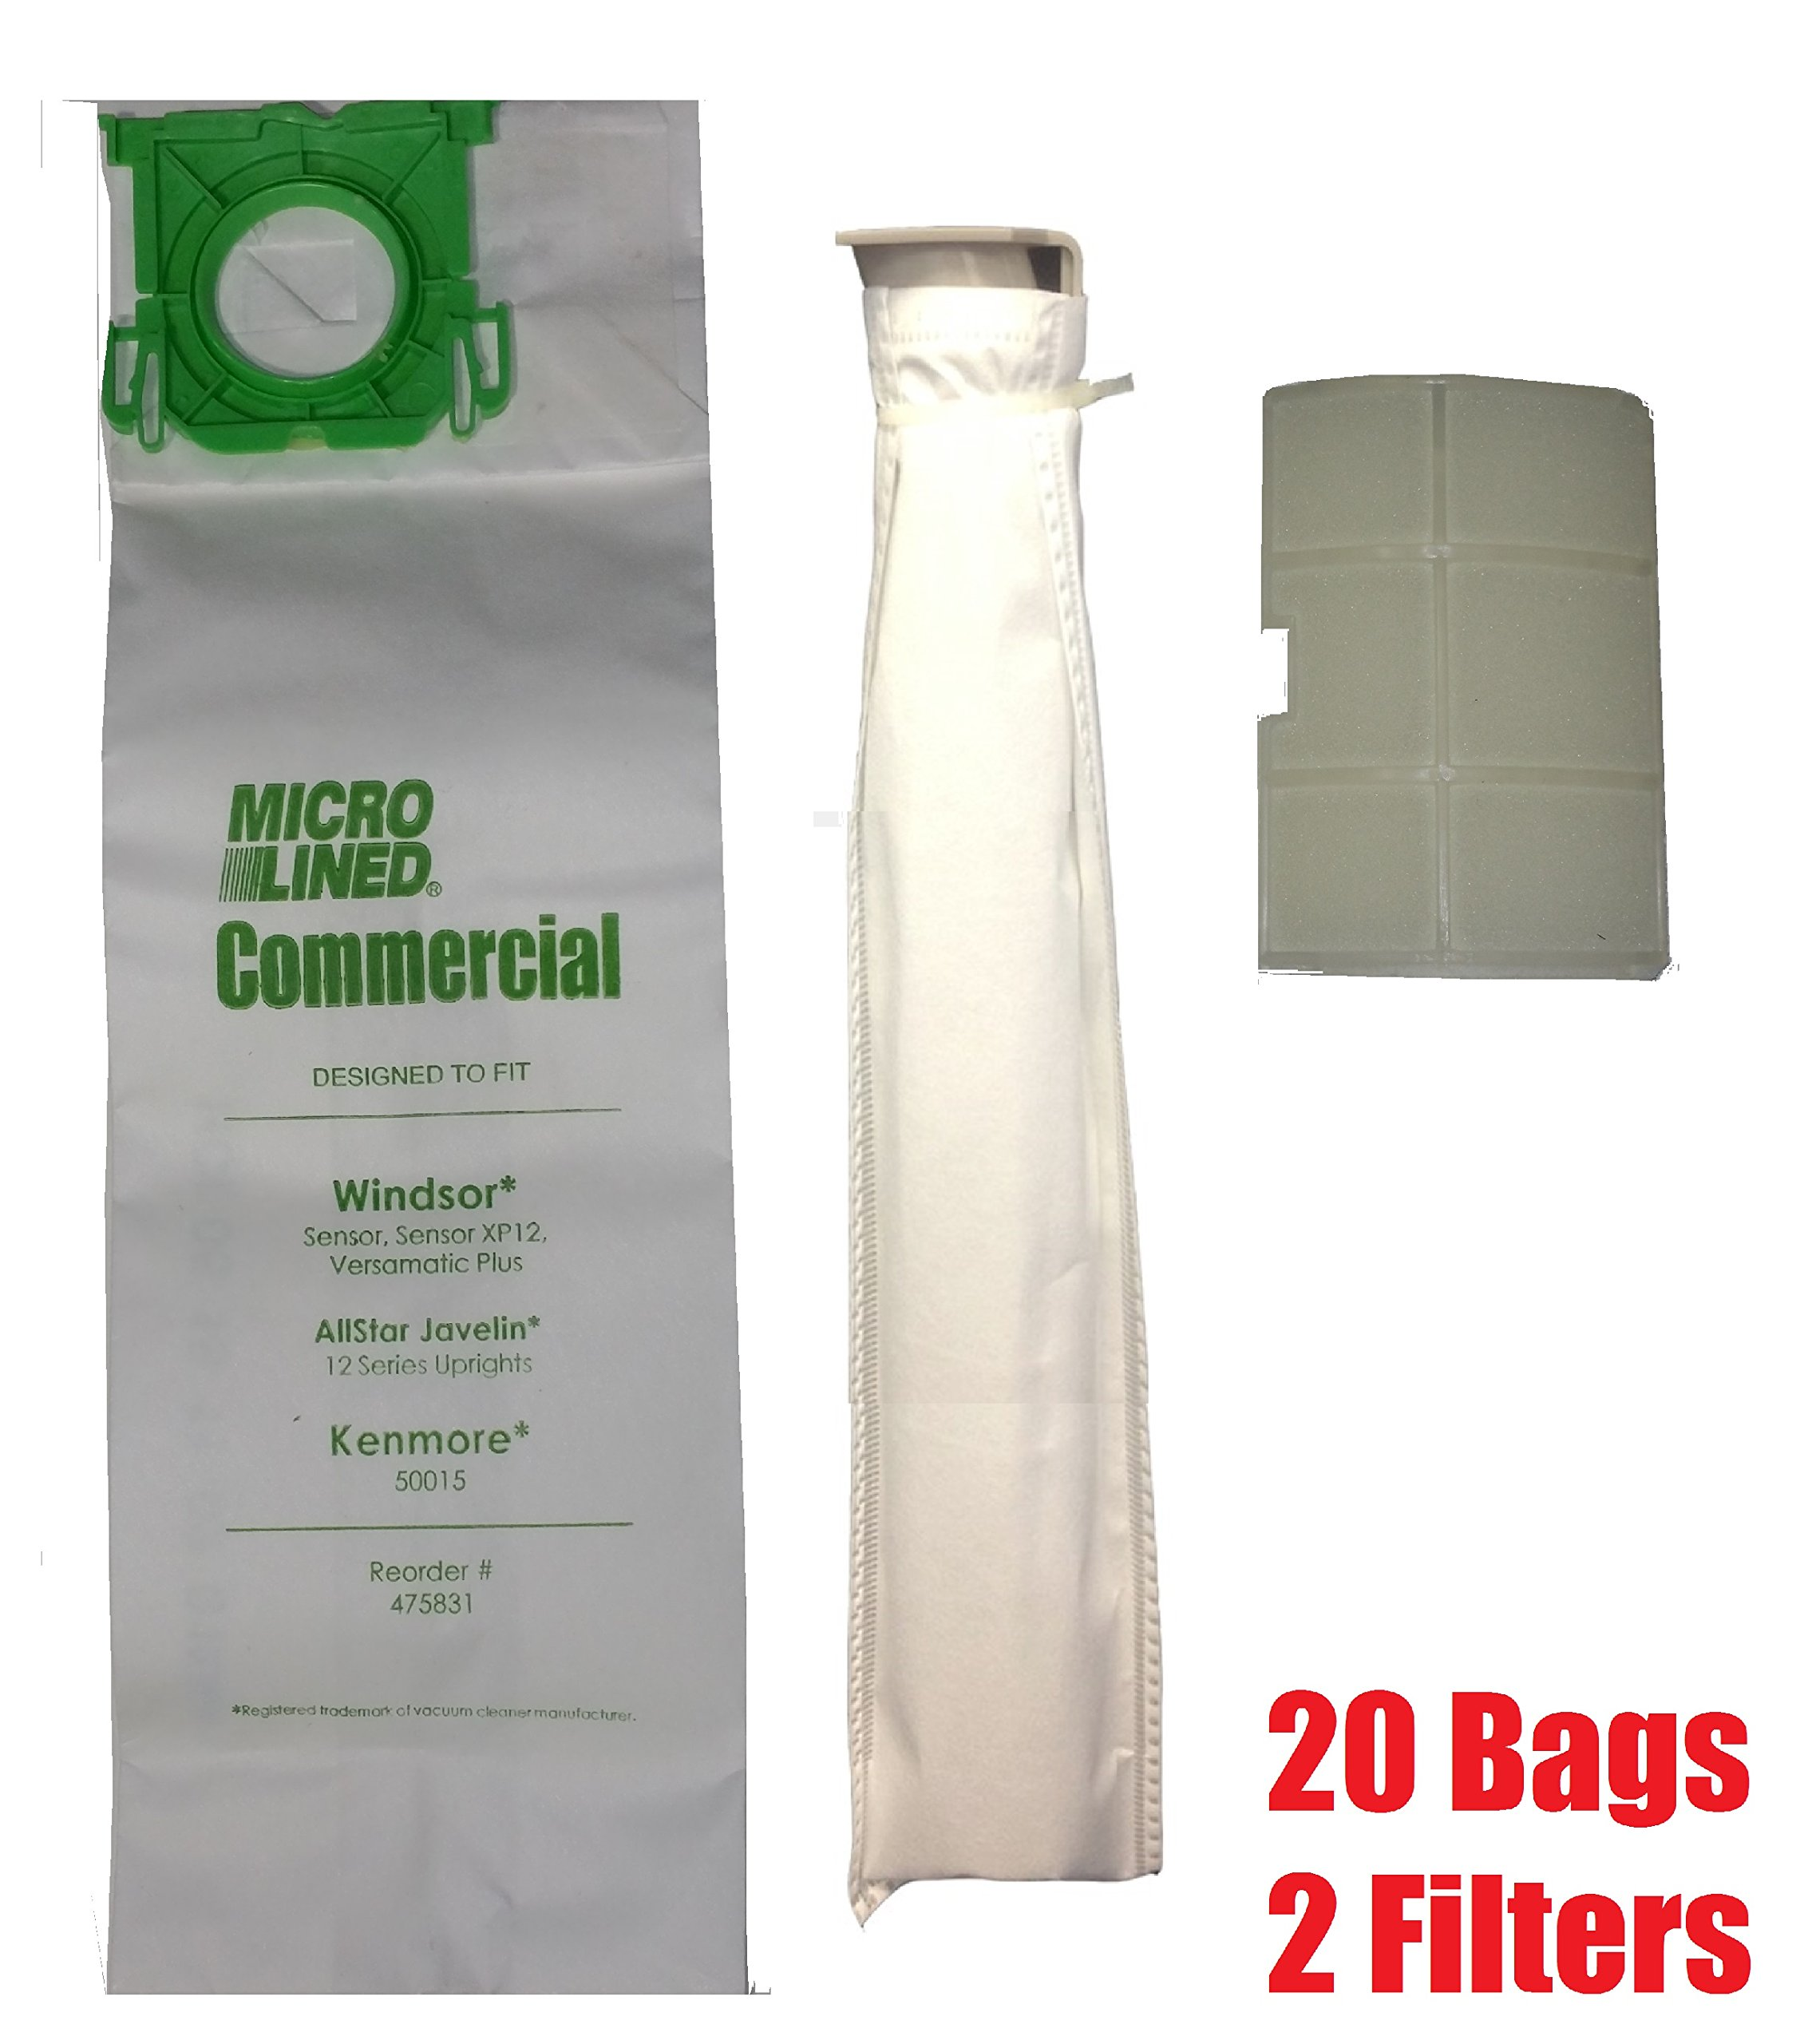 DVC Micro Lined Replacement for Sebo, Windsor Service Box Vacuum Bag and Filter Kit. 20 Bags and 2 Filters. by Micro-Lined DVC